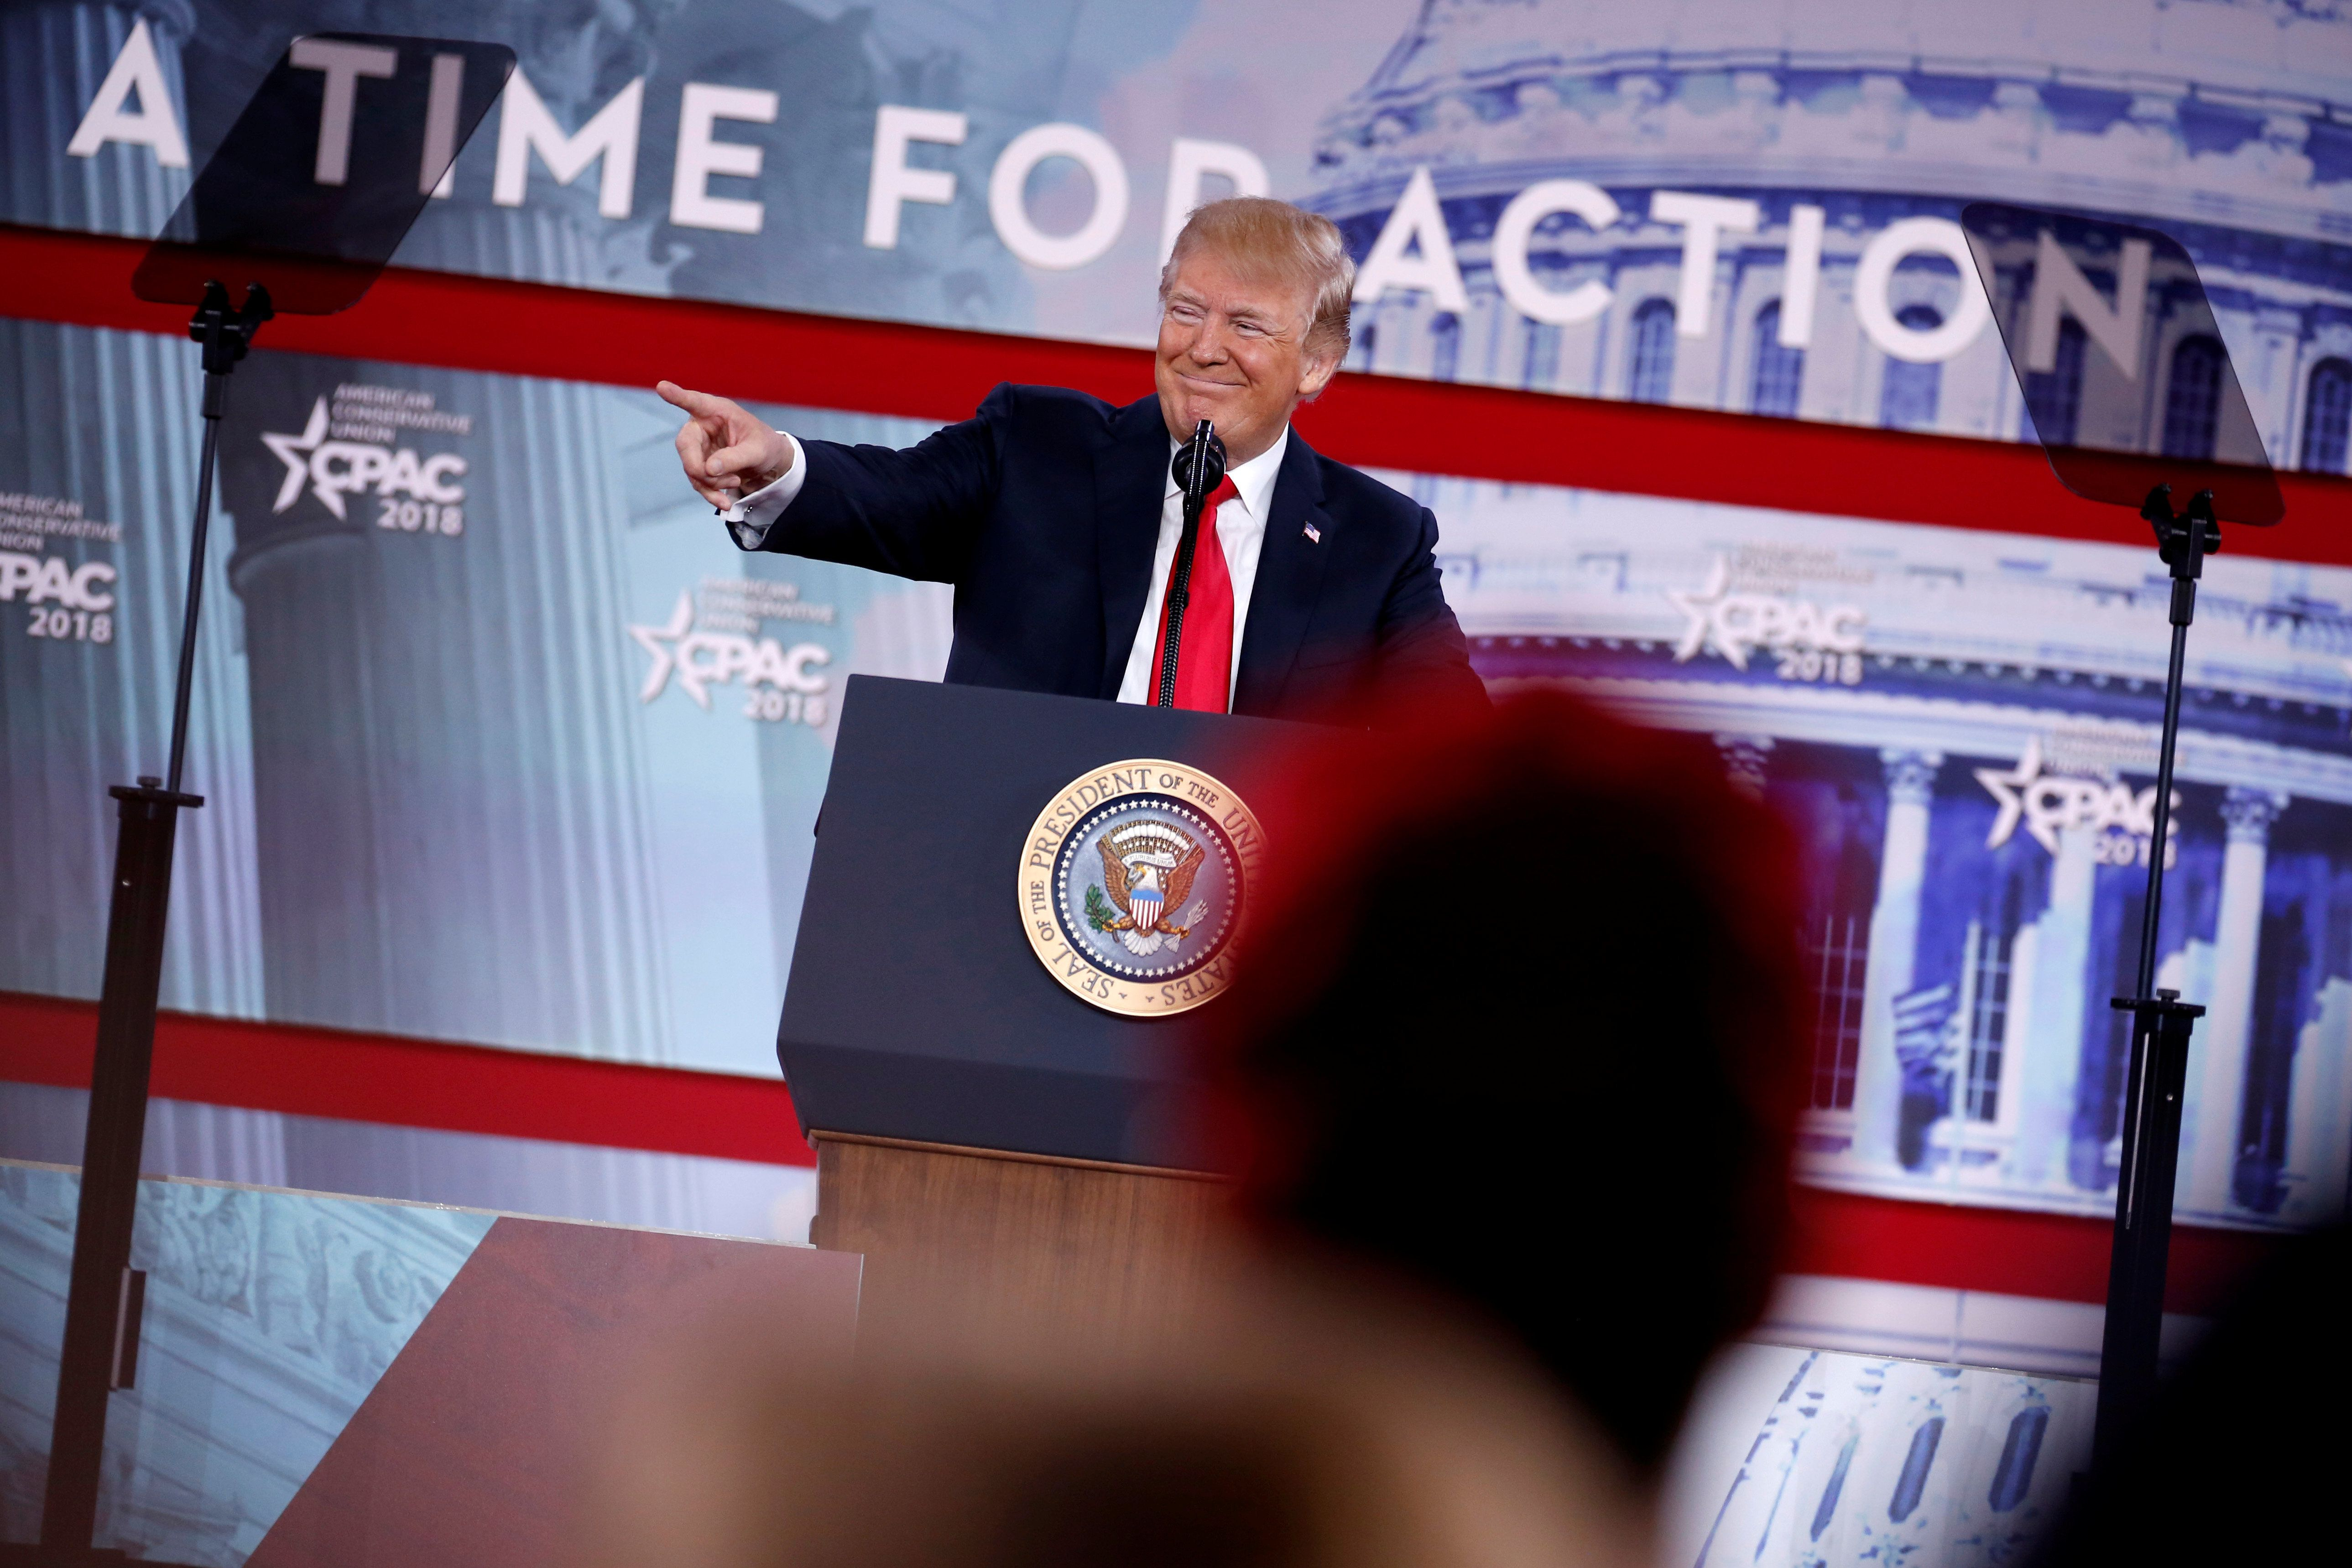 President Donald Trumpspoke at the Conservative Political Action Conference (CPAC) at National Harbor, Maryland, on Fri